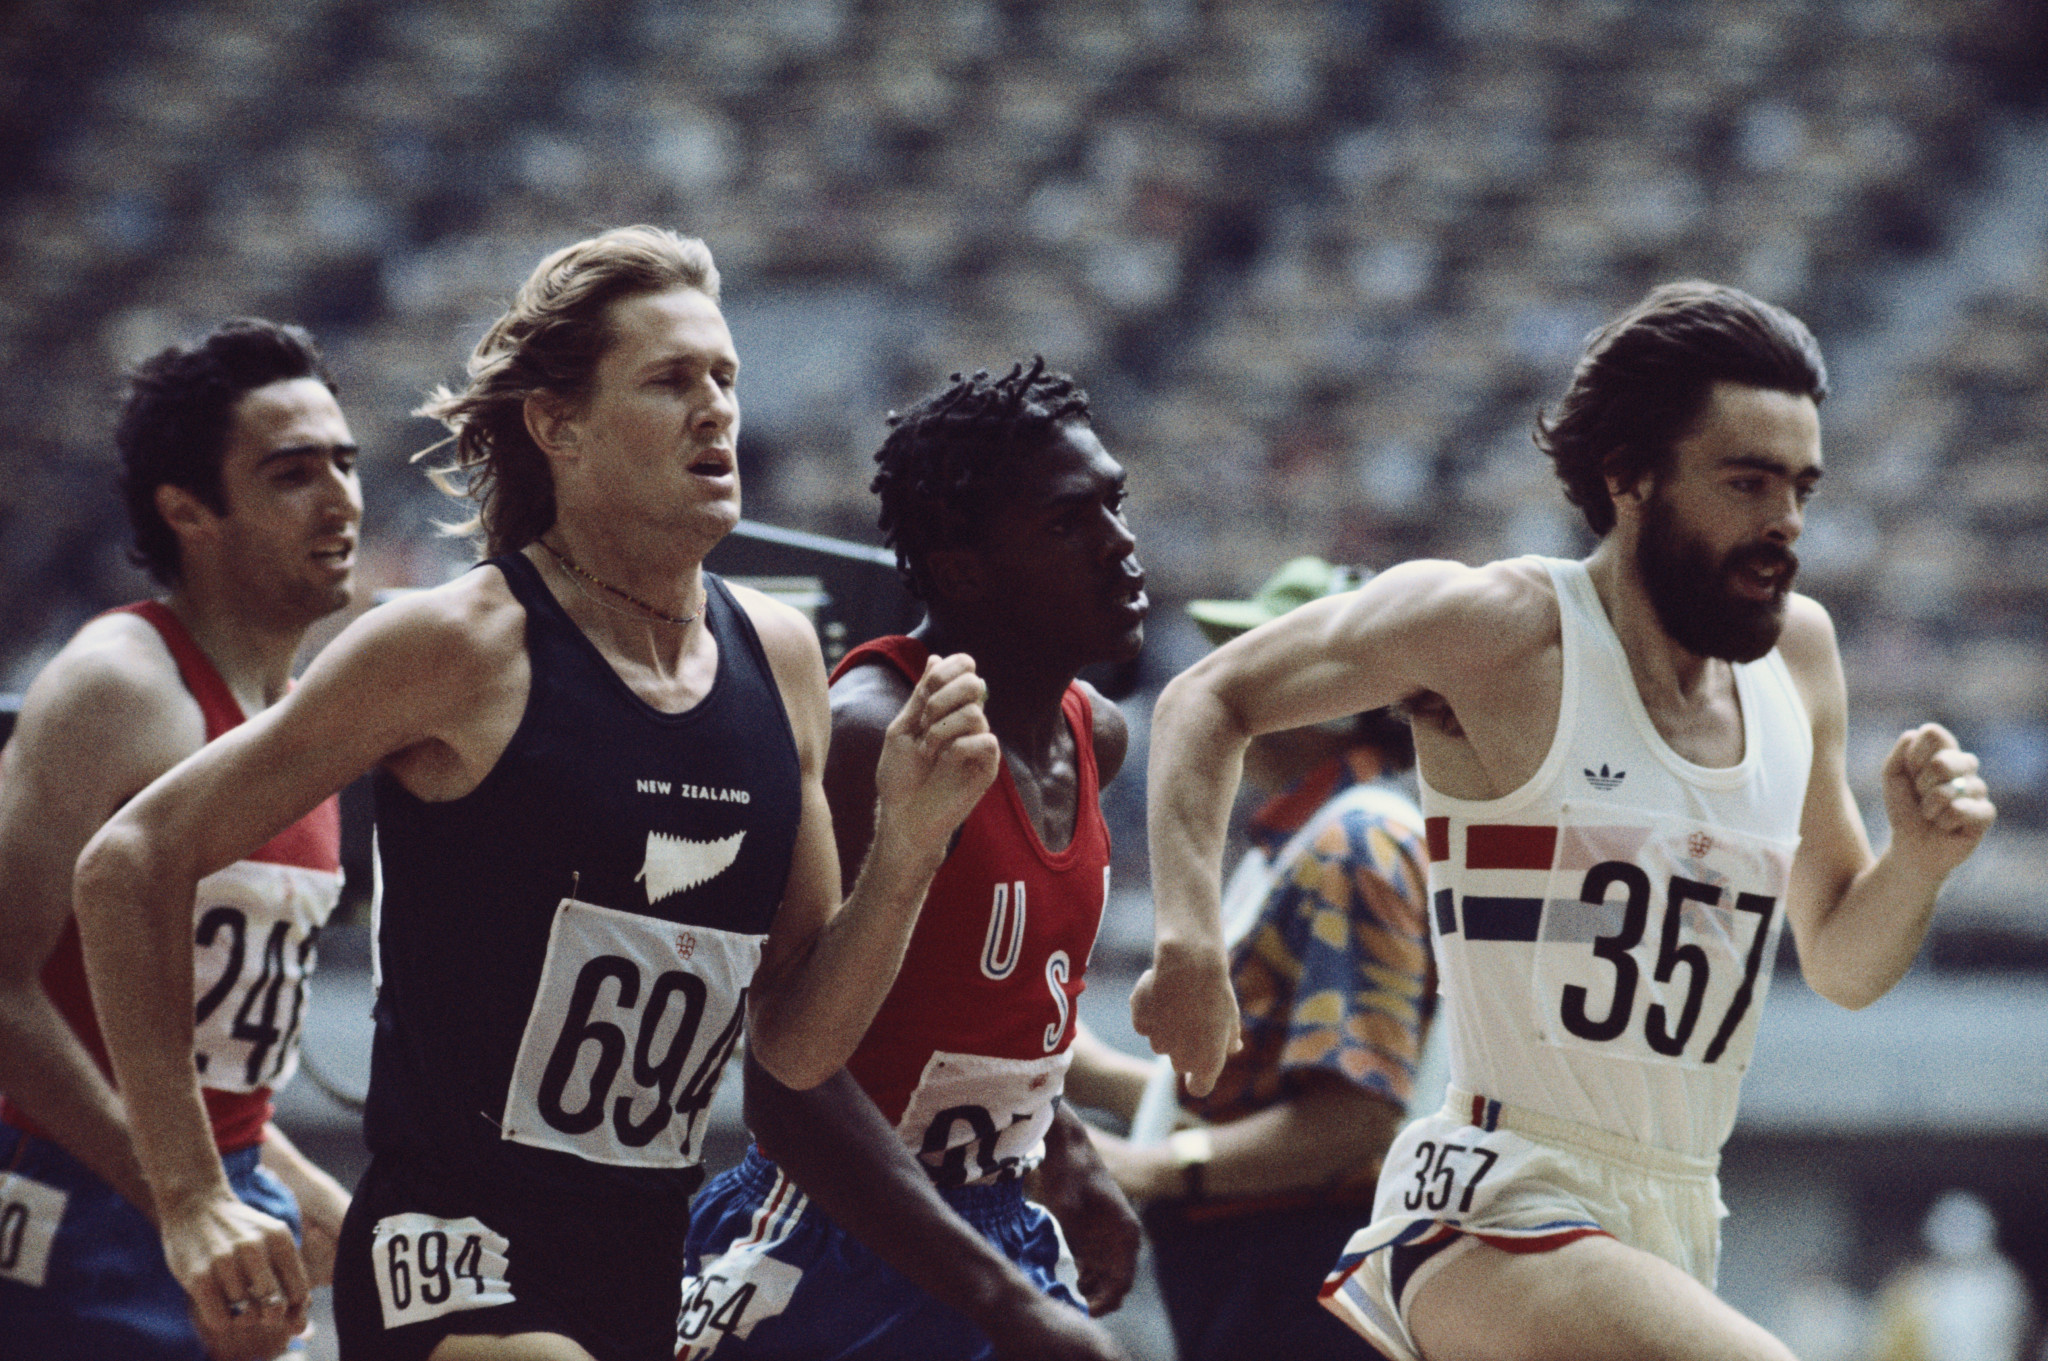 Sir John Walker won the men's 1500m title at the Montreal 1976 Olympic Games ©Getty Images